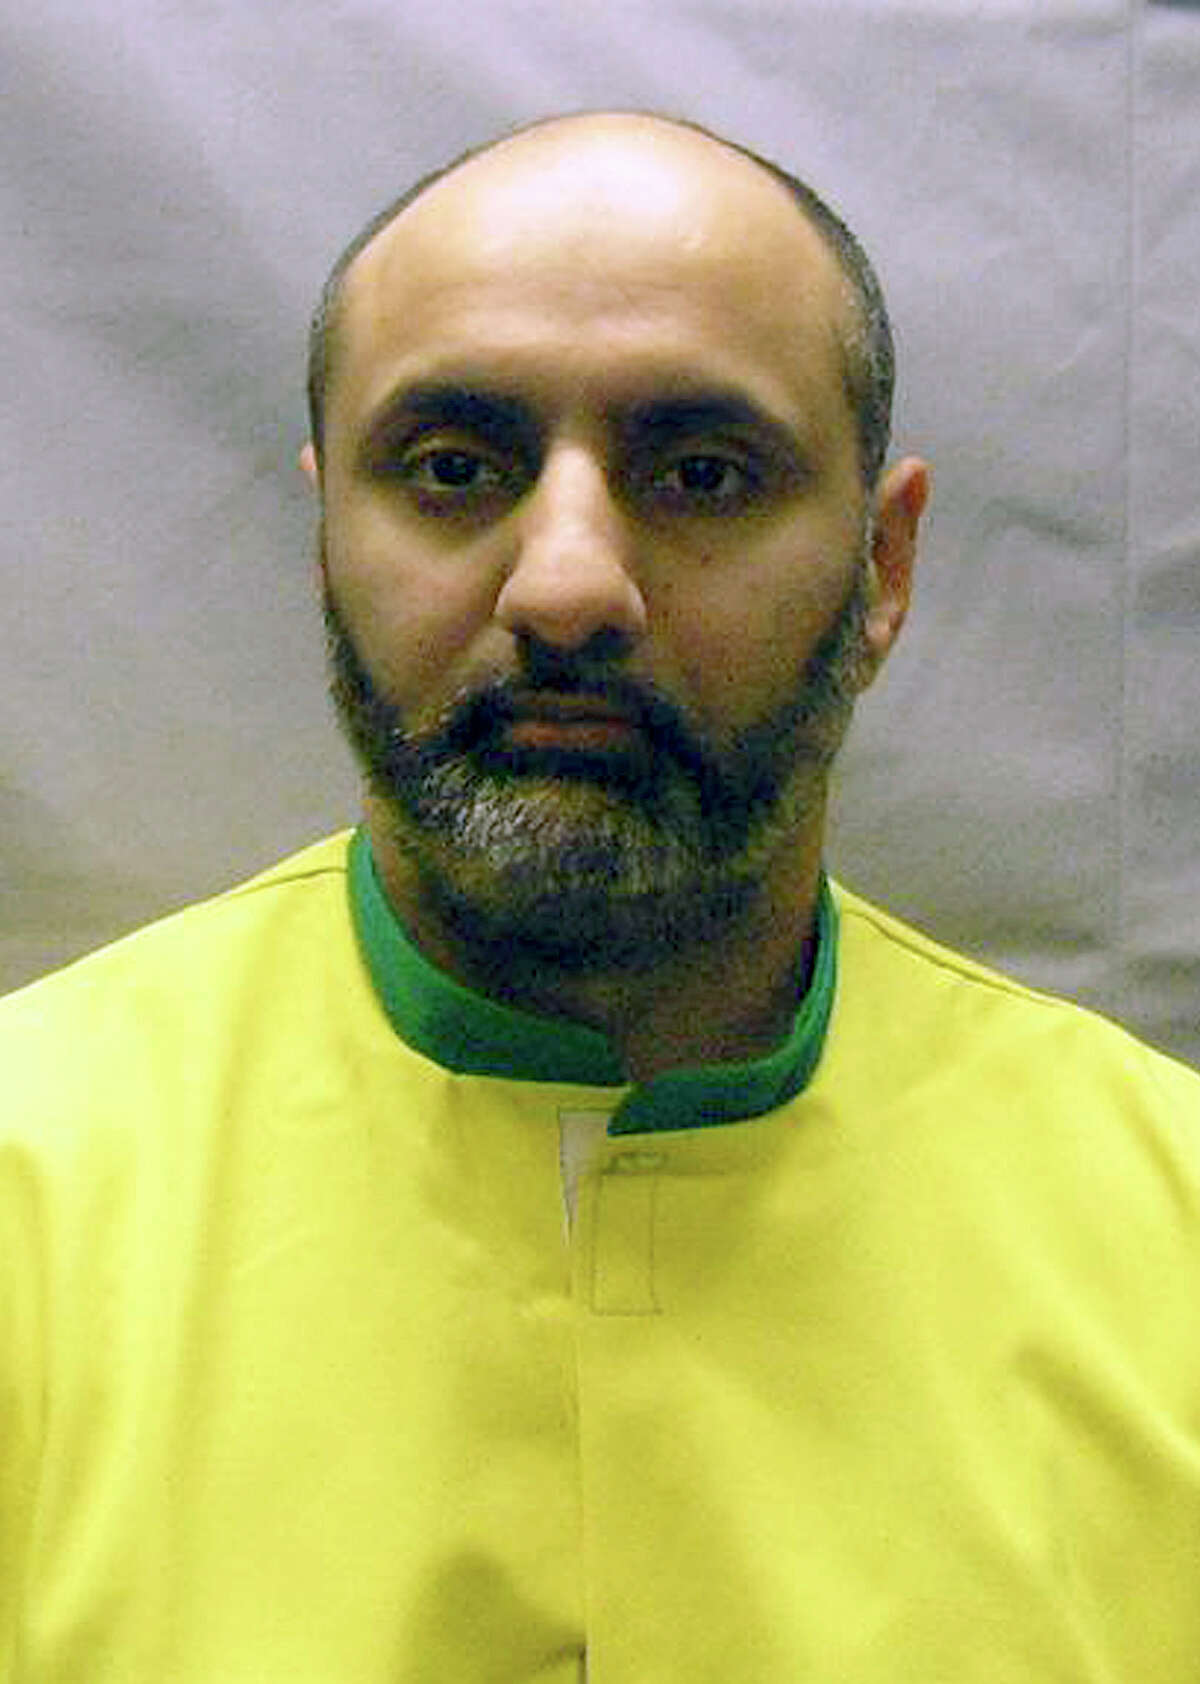 This Nov. 9, 2012 photo provided by the U.S. Attorney's Office shows Babar Ahmad, extradited in October 2012 with Syed Talha Ahsan to the United States from Britain on charges they supported terrorists in Afghanistan and Chechnya by operating websites to raise cash, recruit fighters and solicit items such as gas masks. Ahmad pleaded not guilty on Oct. 6, 2012 and is detained while he awaits trial. Both men have hearings scheduled Tuesday, Dec. 10, 2013, in federal court in New Haven, Conn., to change their pleas. They had previously pleaded not guilty. The two men faced charges in Connecticut, where an Internet service provider was allegedly used to run one of the websites. (AP Photo/U.S. Attorney's Office, File)